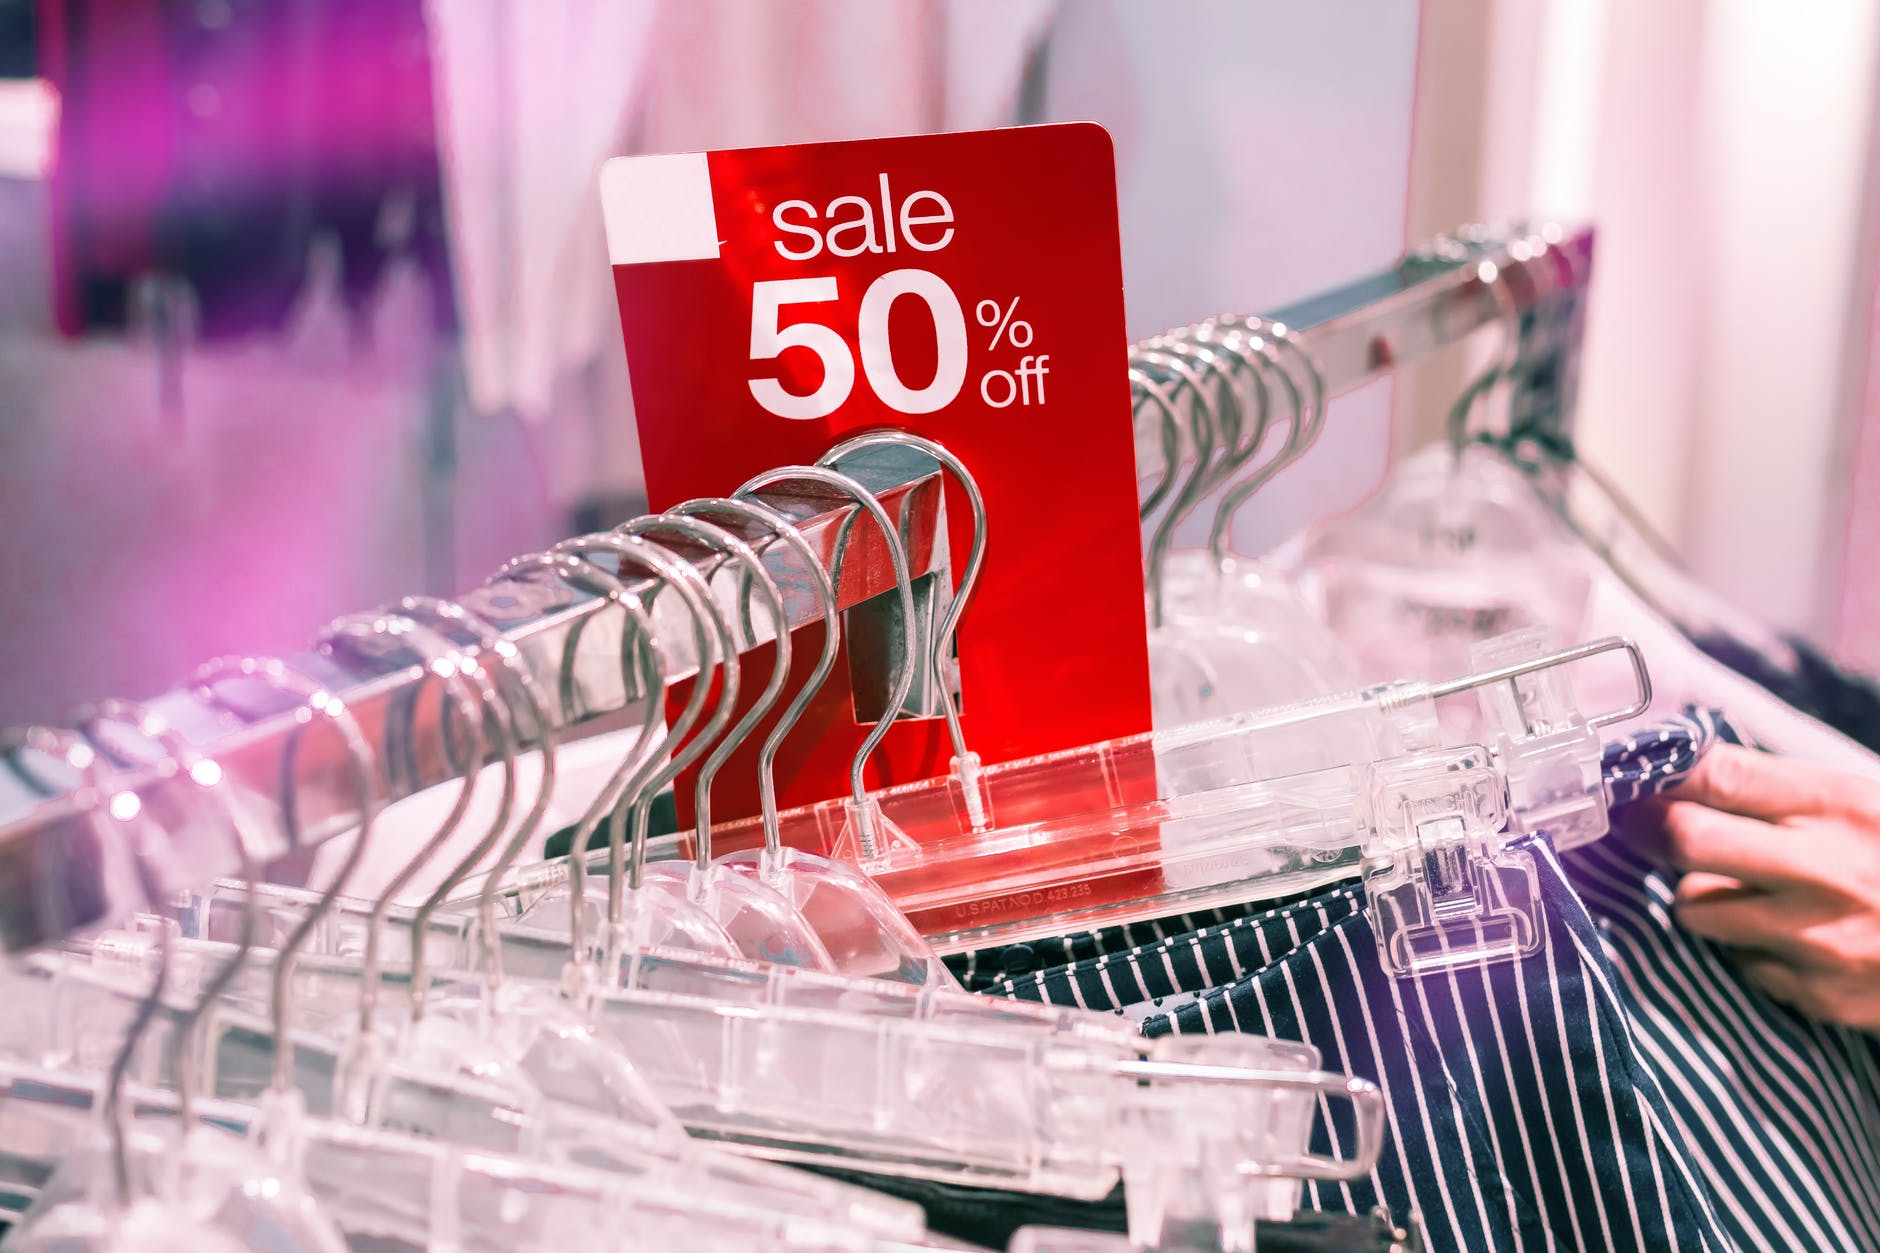 Clothing rack with a sale sign | Source: Pexels